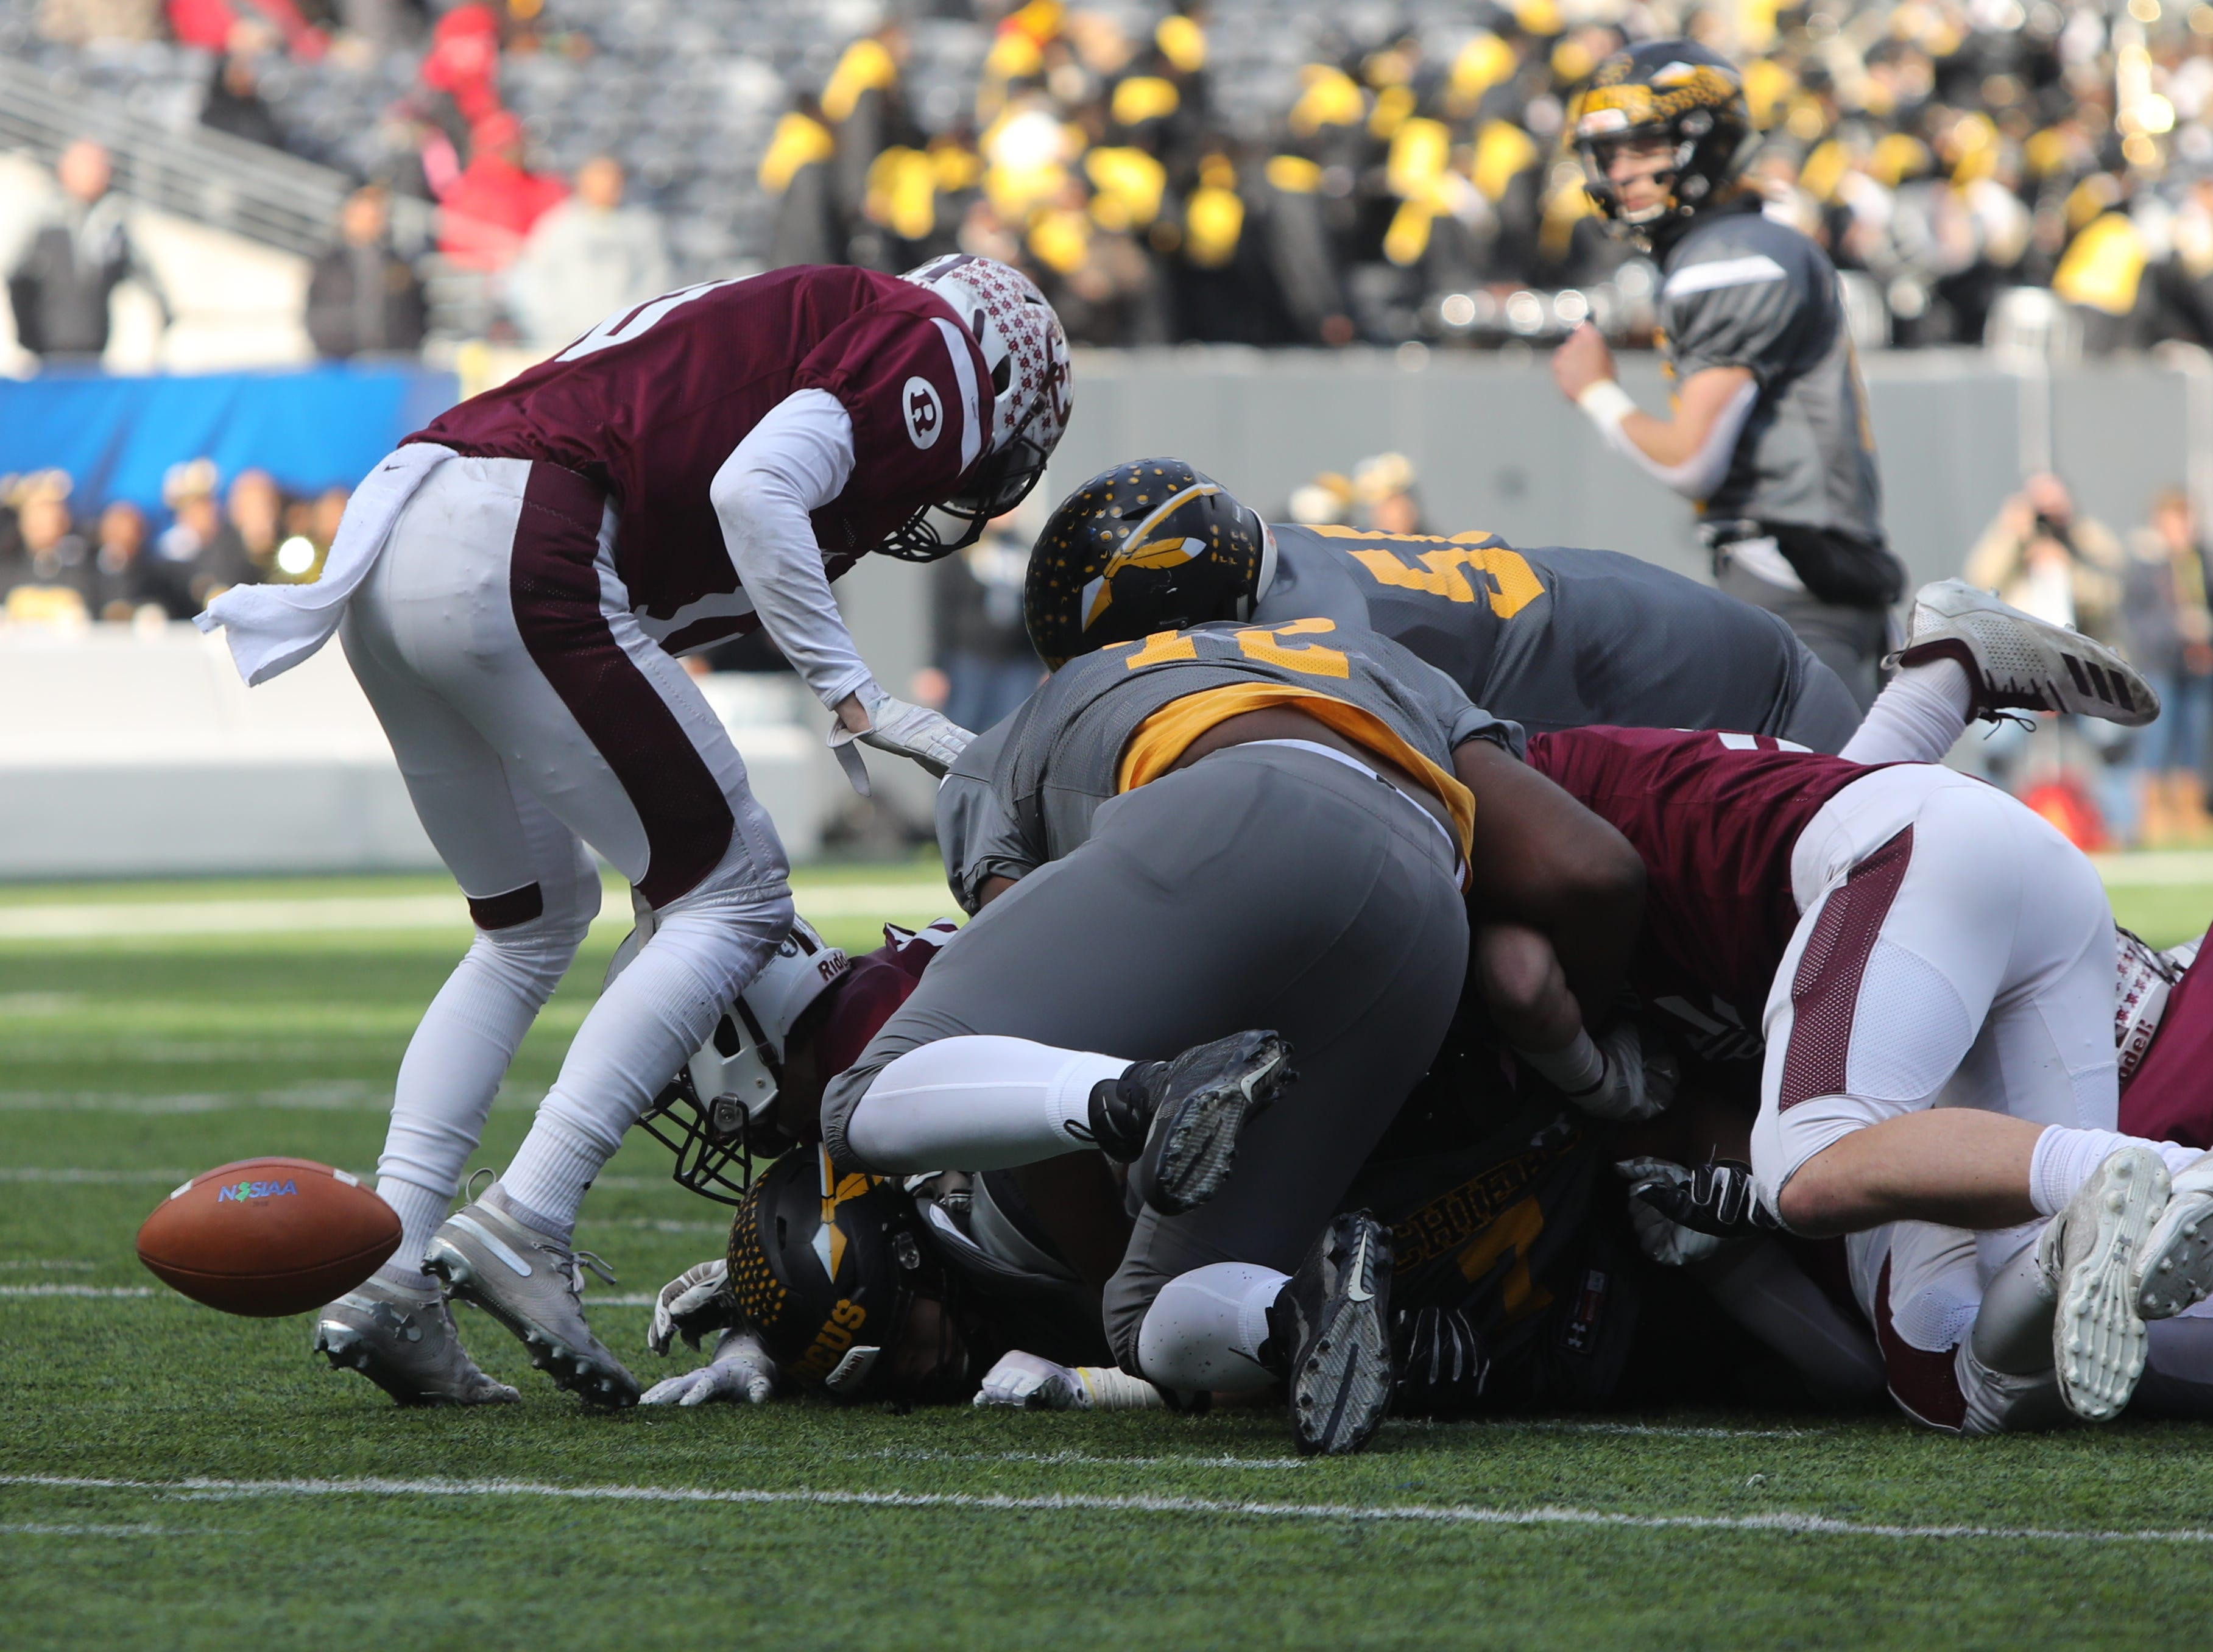 A Piscataway fumble that gets picked up by offensive lineman Jordan Martell of Piscataway for a second quarter TD.